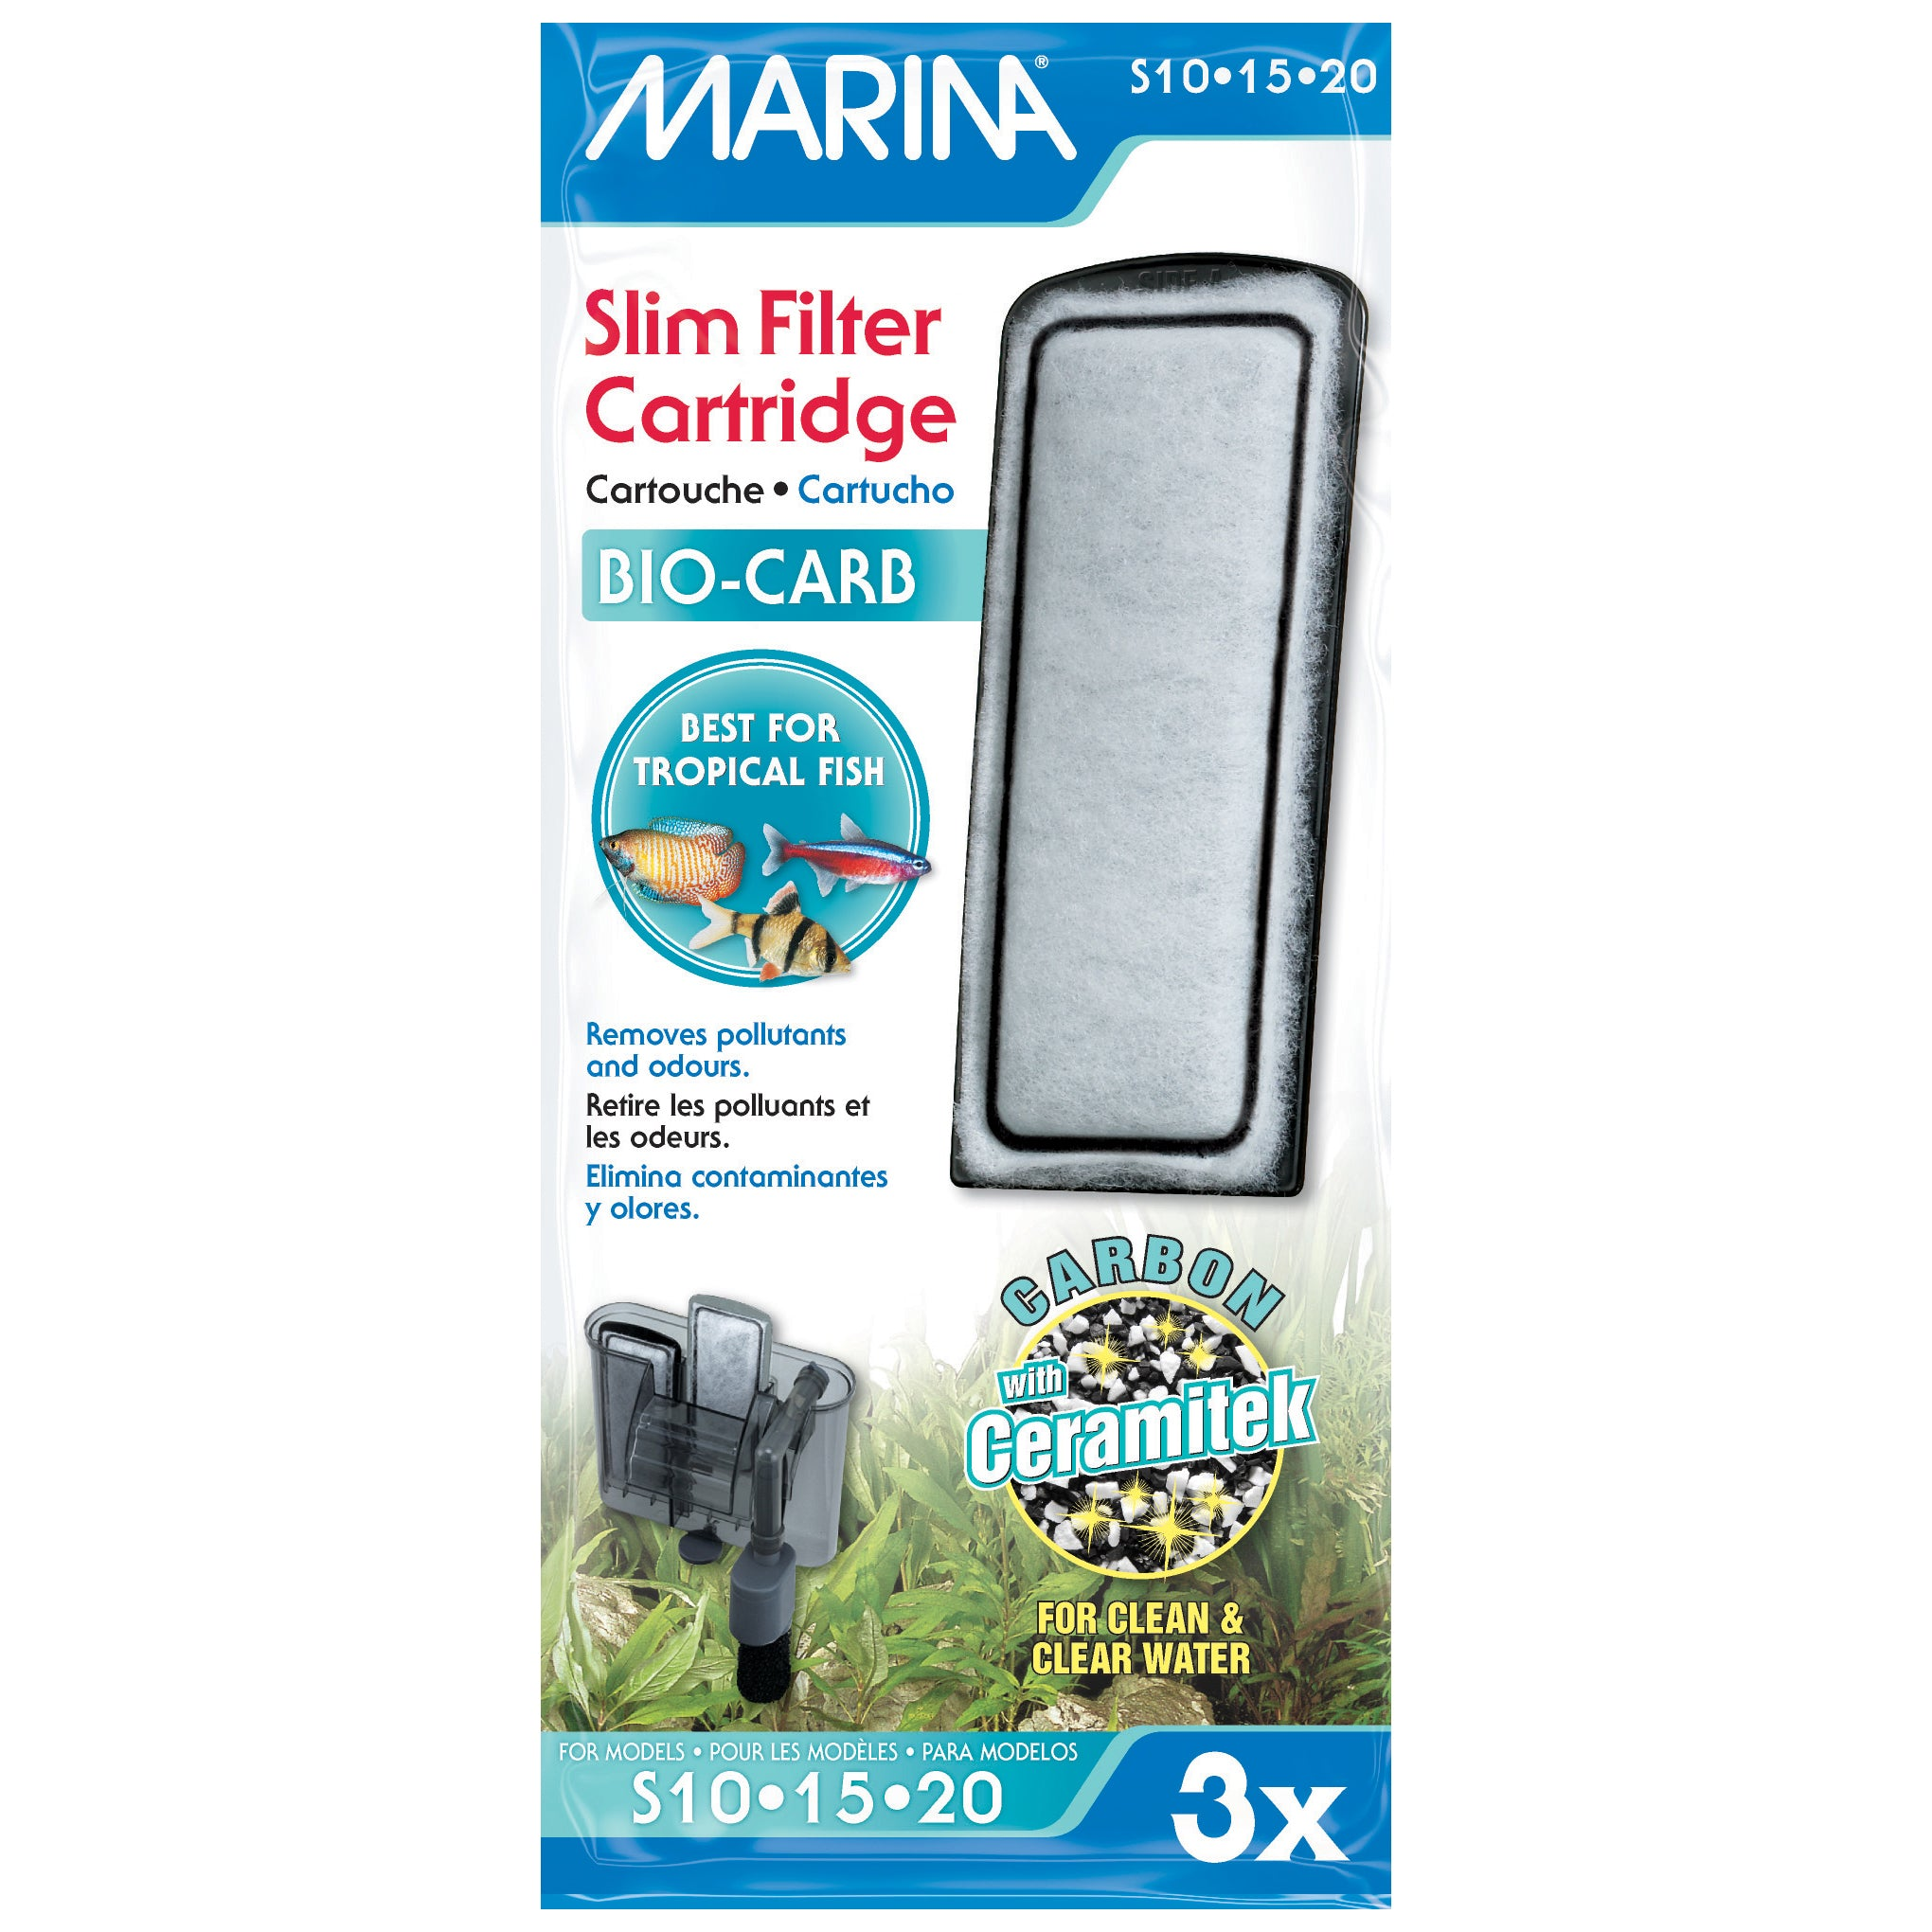 Marina Cartridges